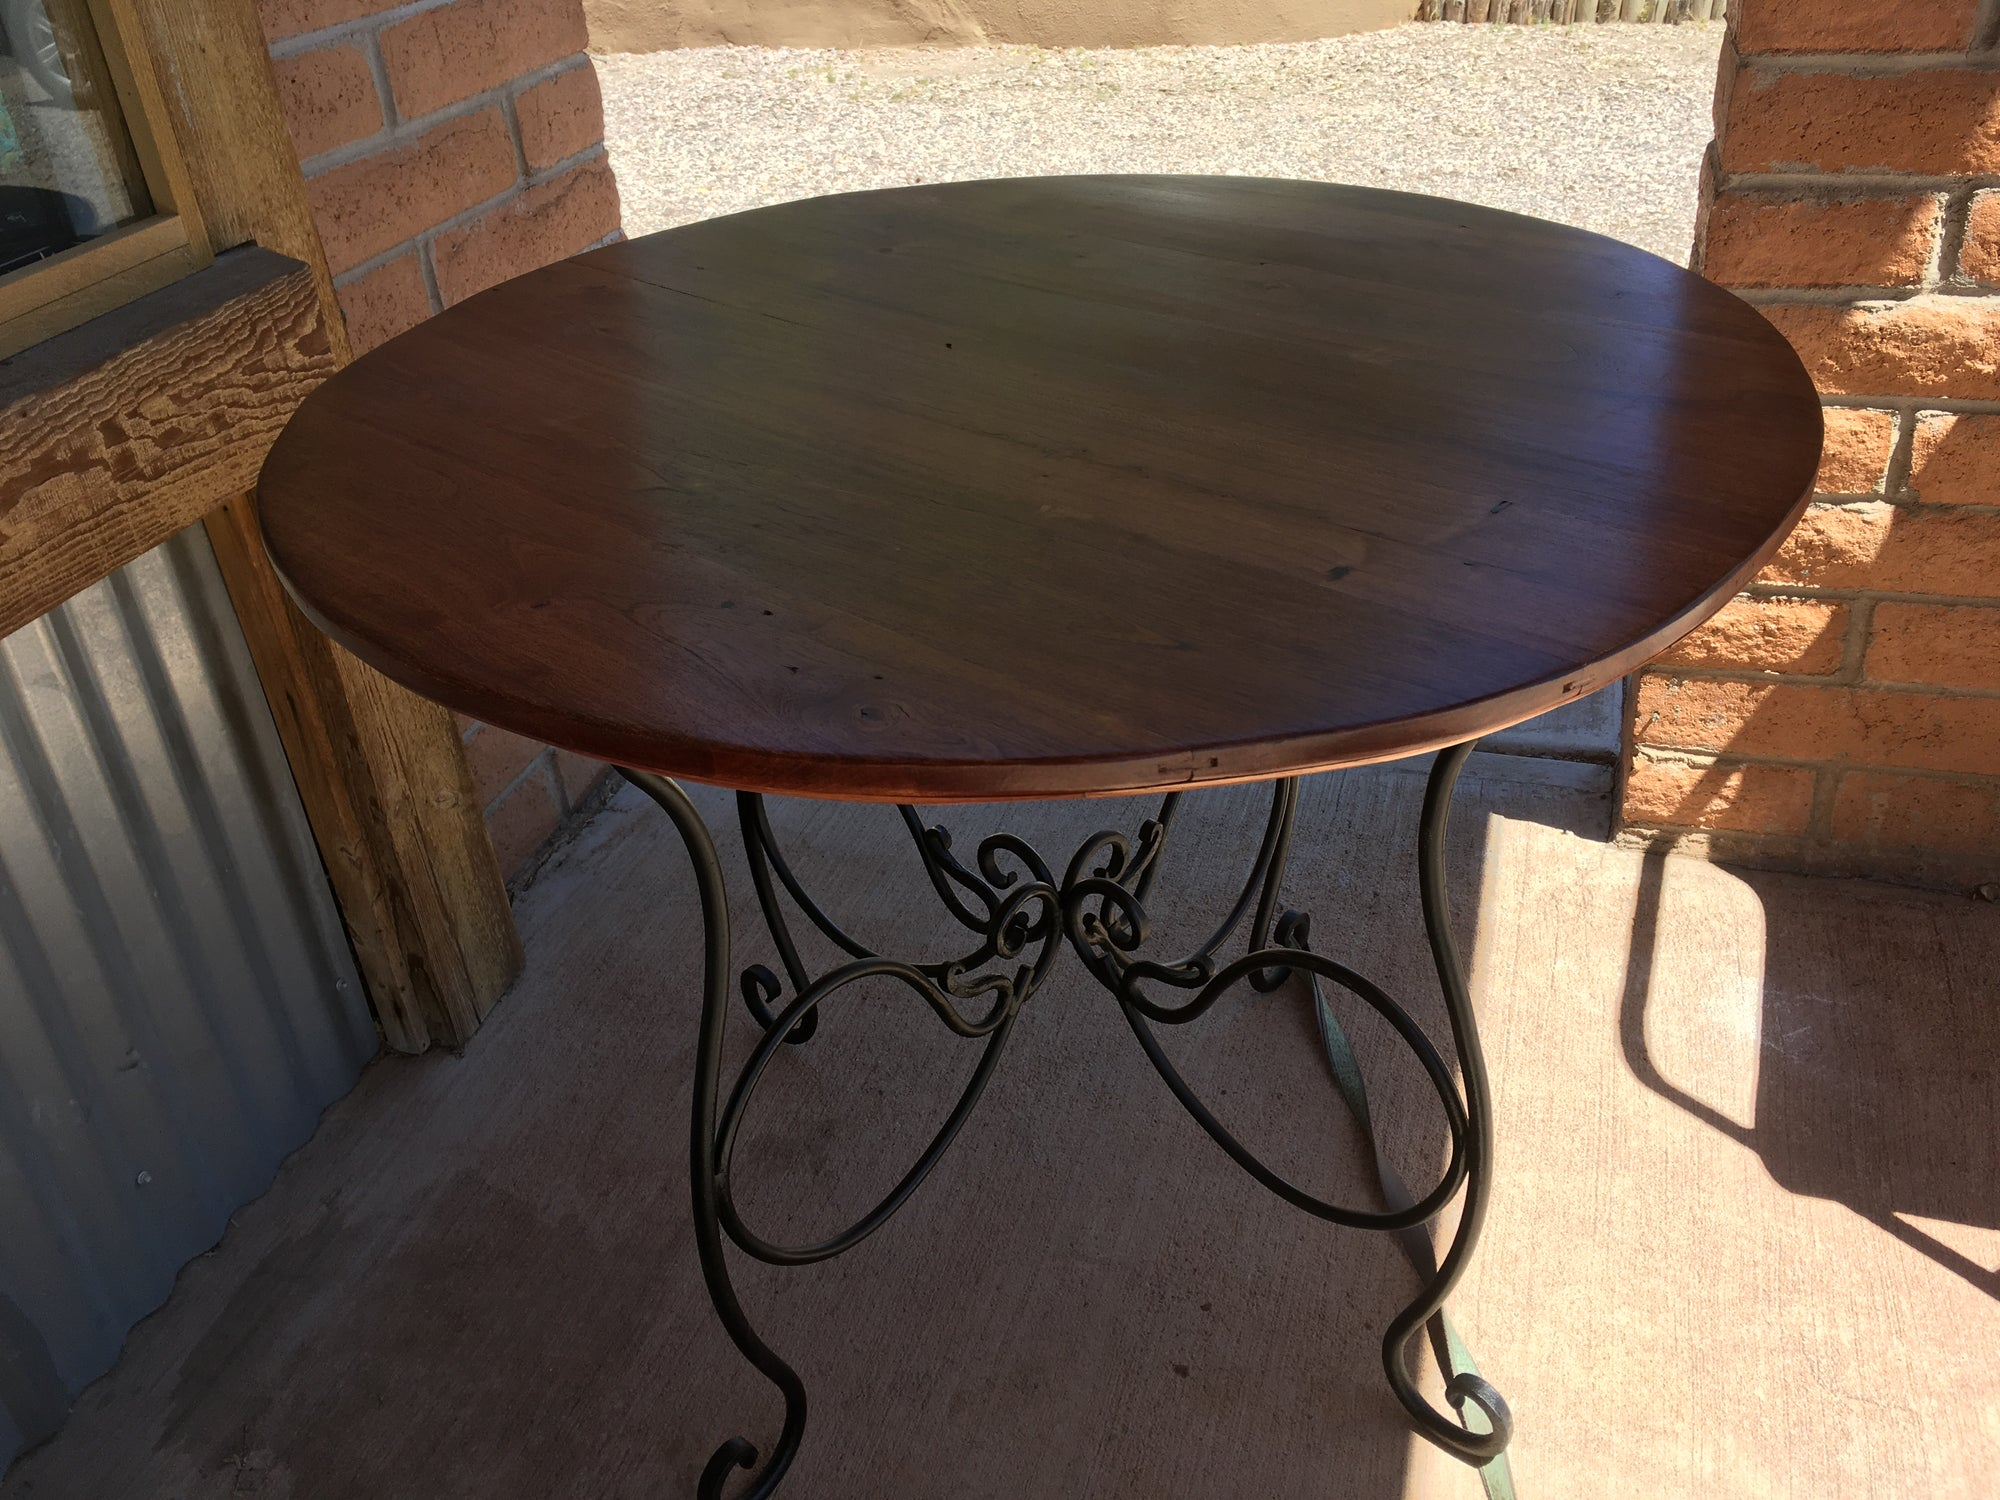 Circle Wood Table with Metal Stand Frame Available at Arroyo Framing in Tubac Arizona